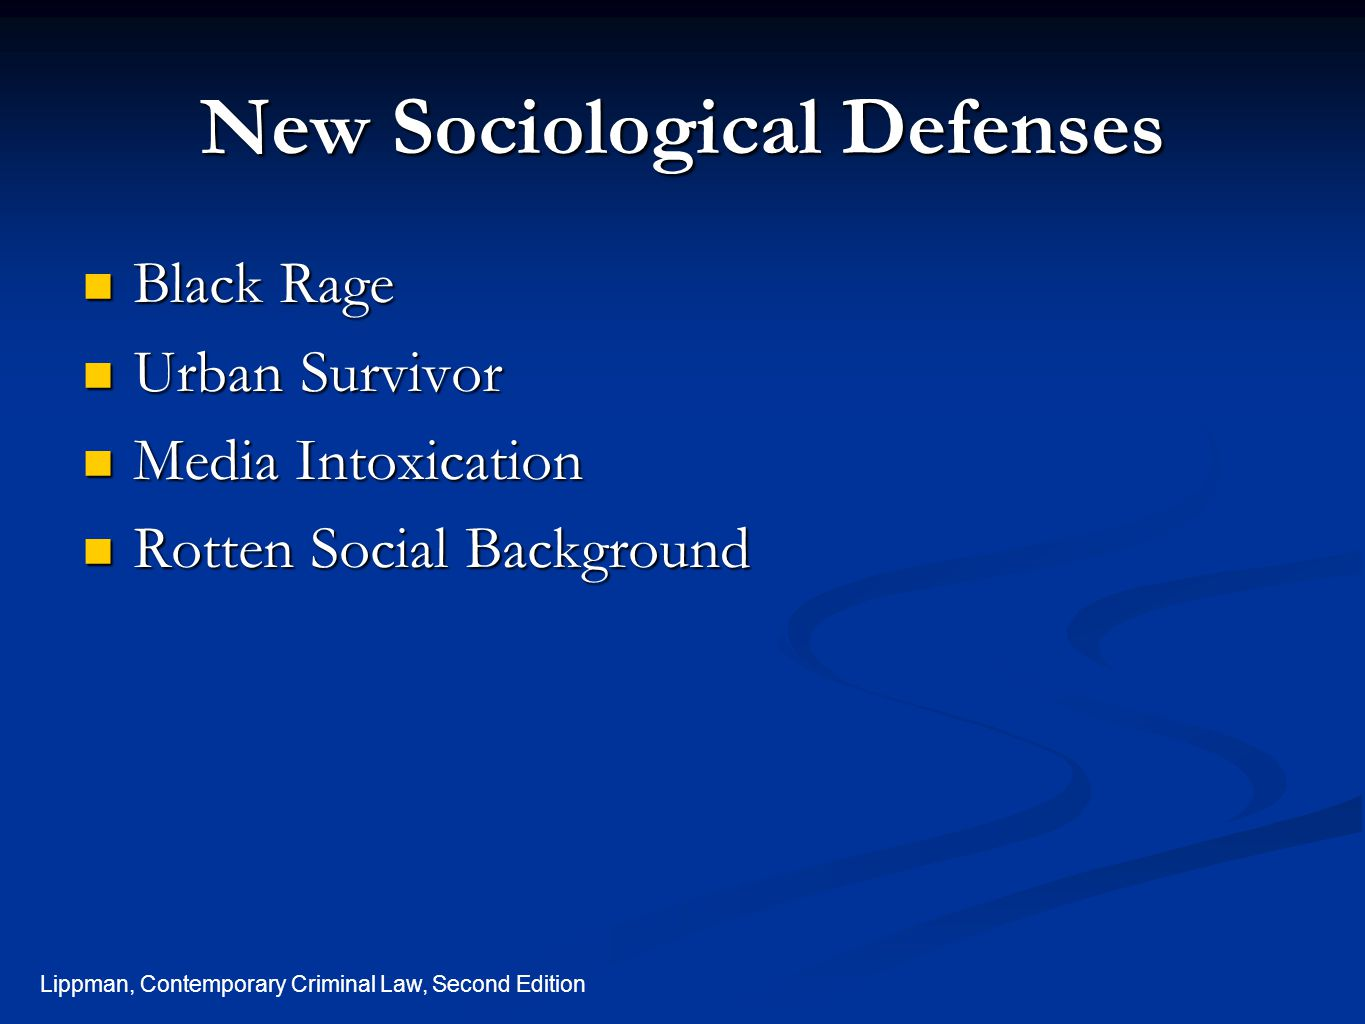 New Sociological Defenses